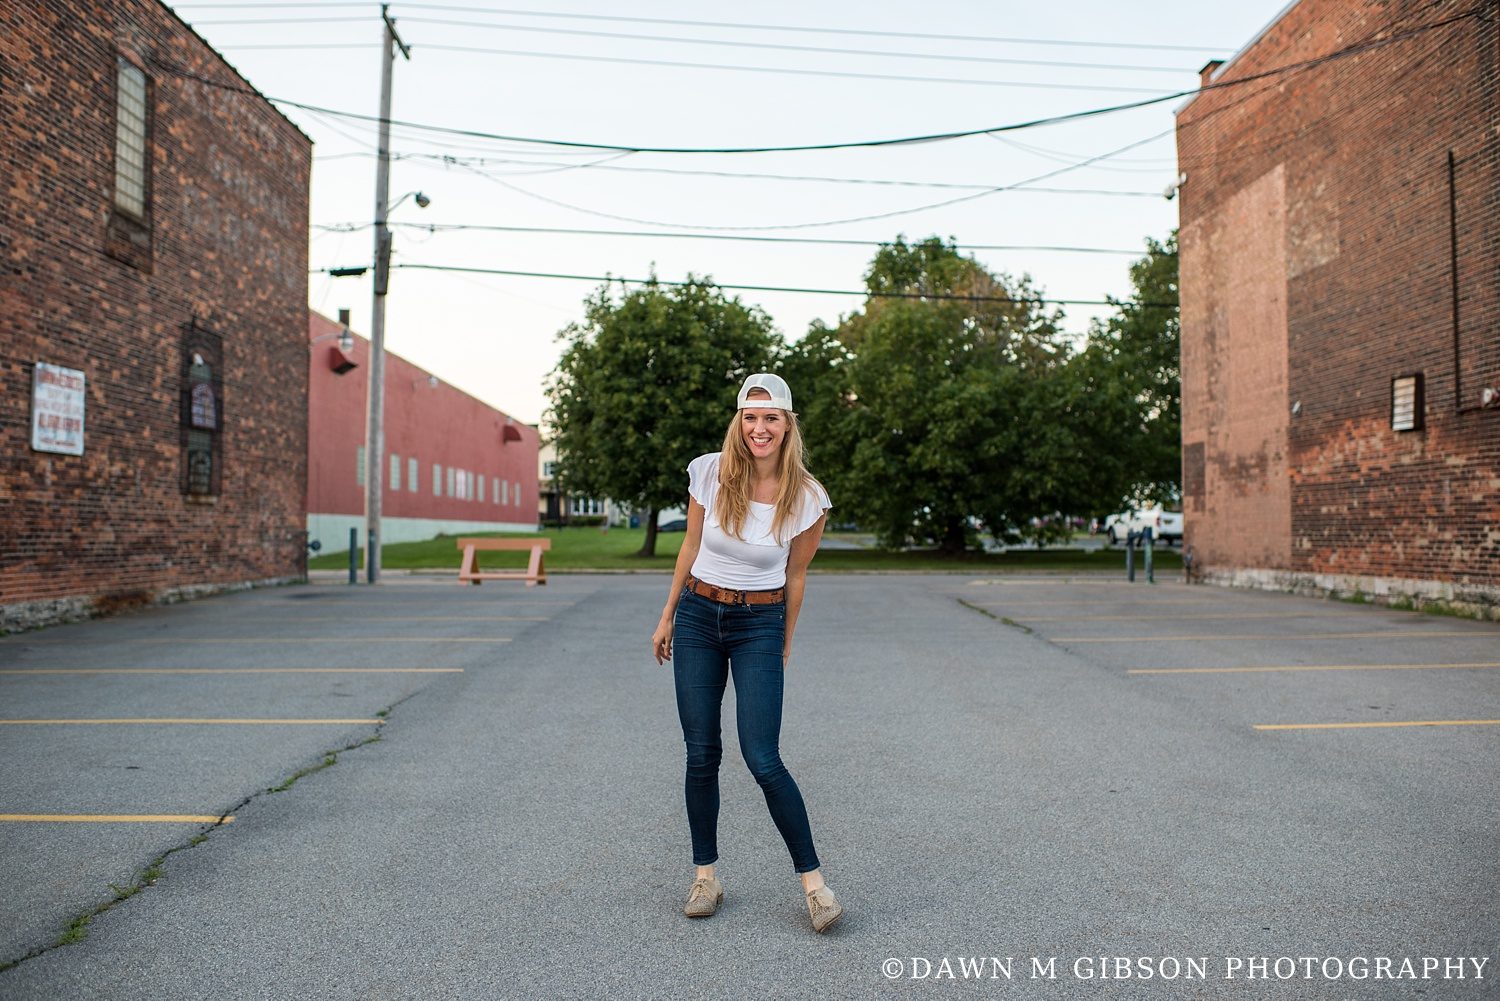 Casey Kelly Portraits | Photos by Dawn M Gibson Photography